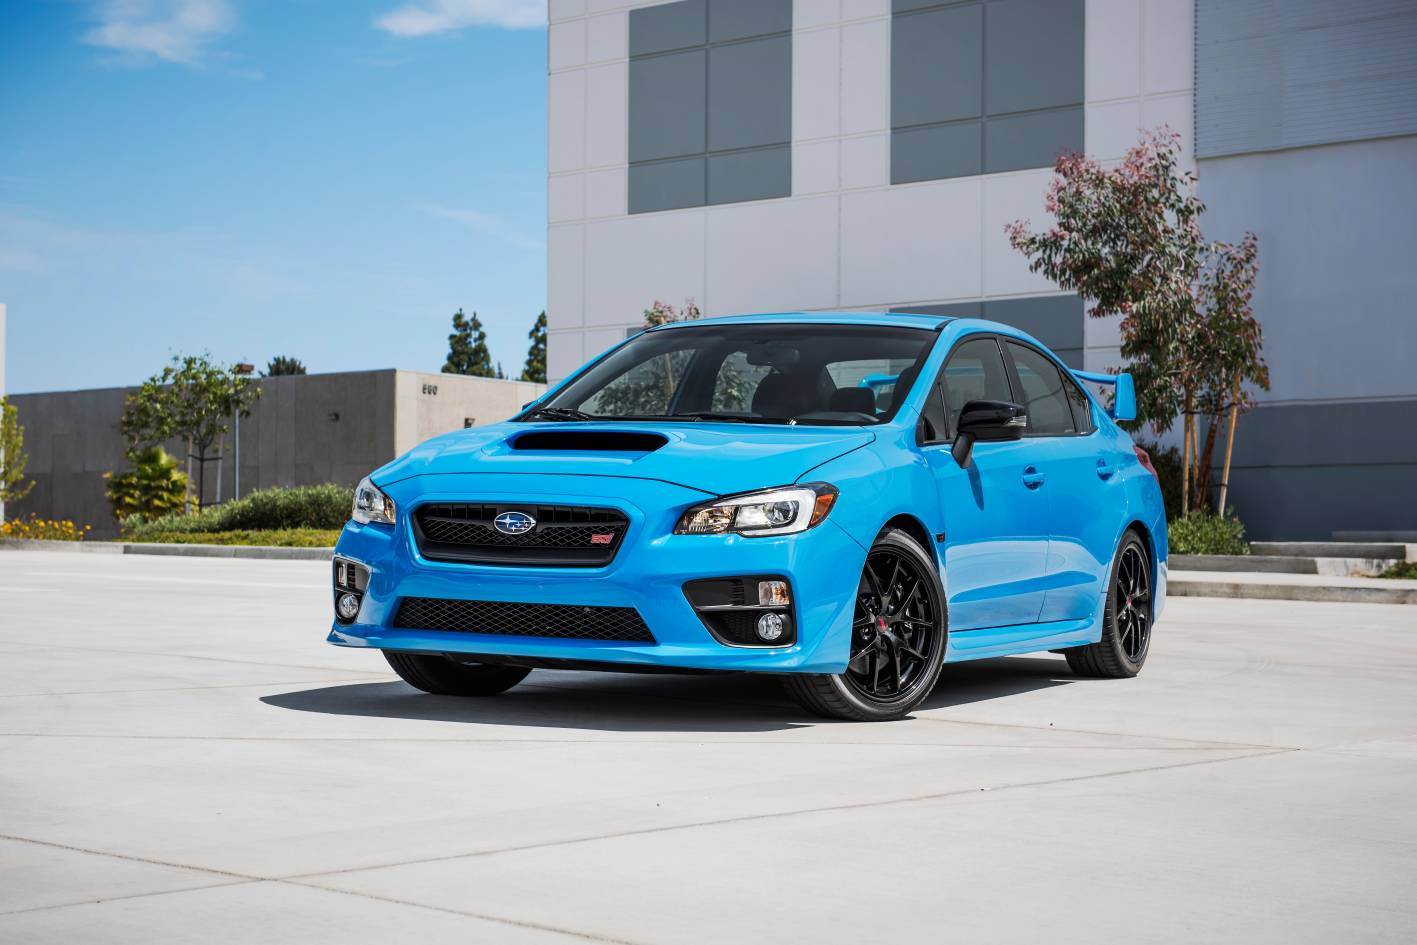 2021 Wrx Sti Hyperblue New Model and Performance